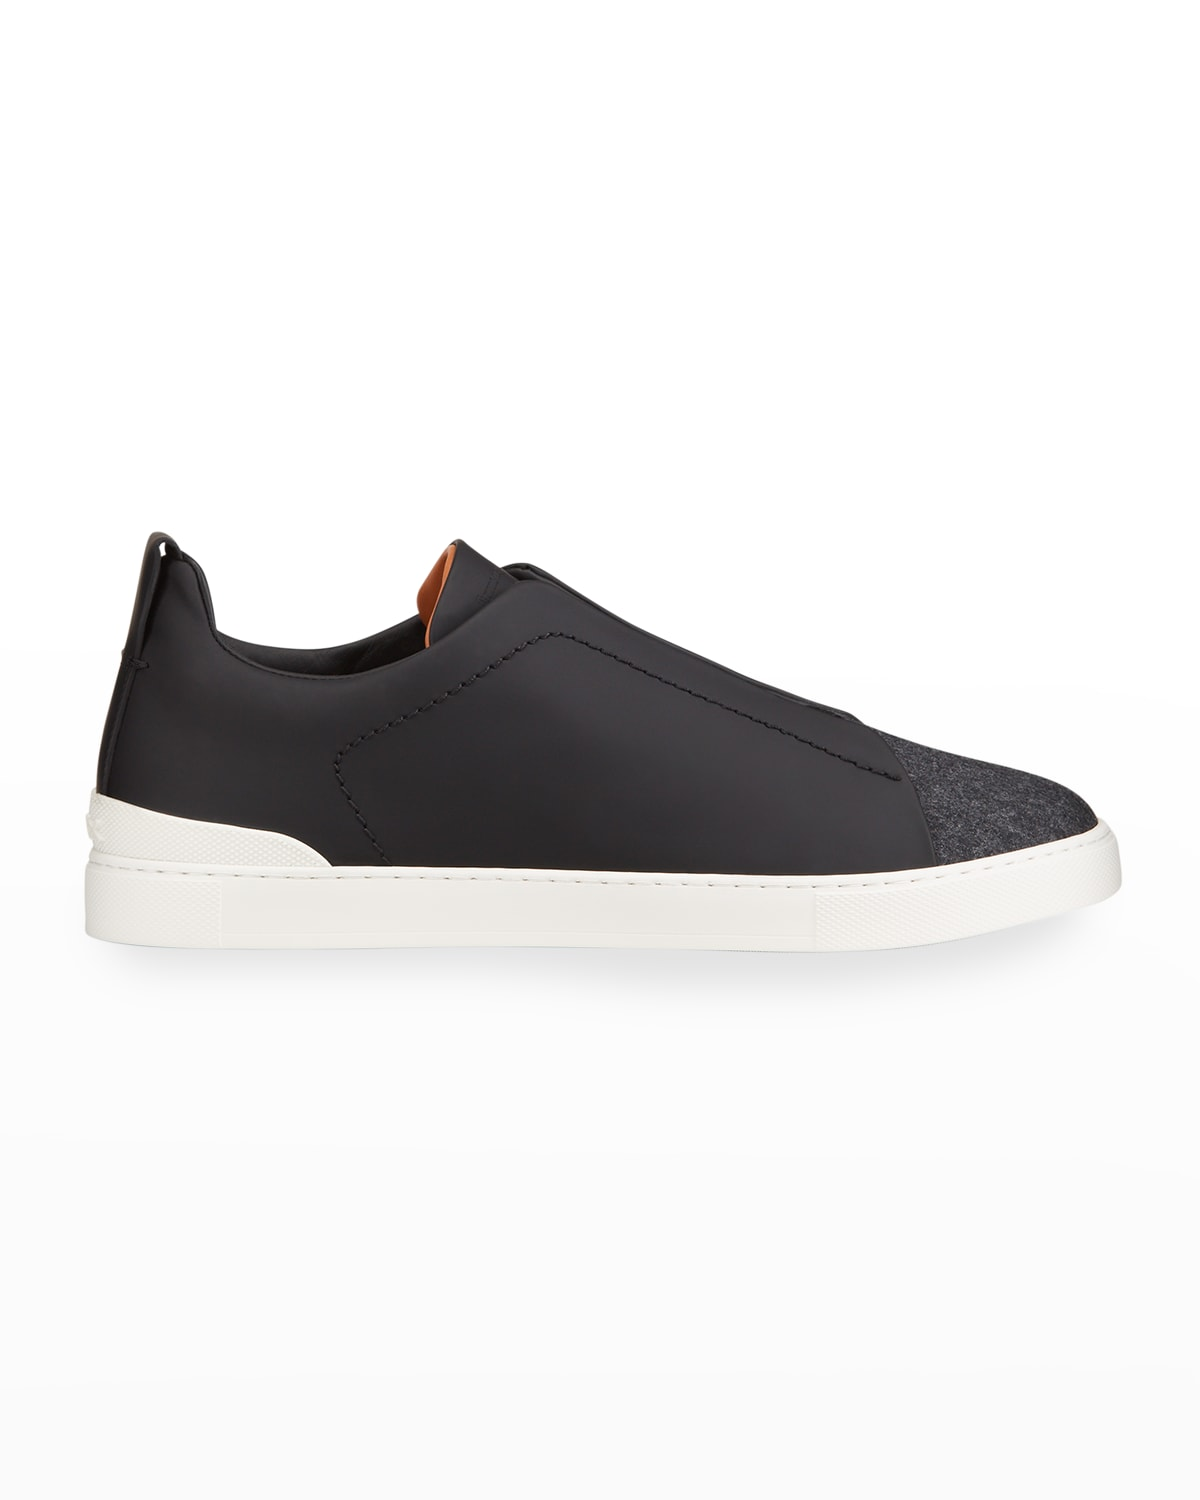 Men's Triple-Stitch Leather & Flannel Low-Top Sneakers